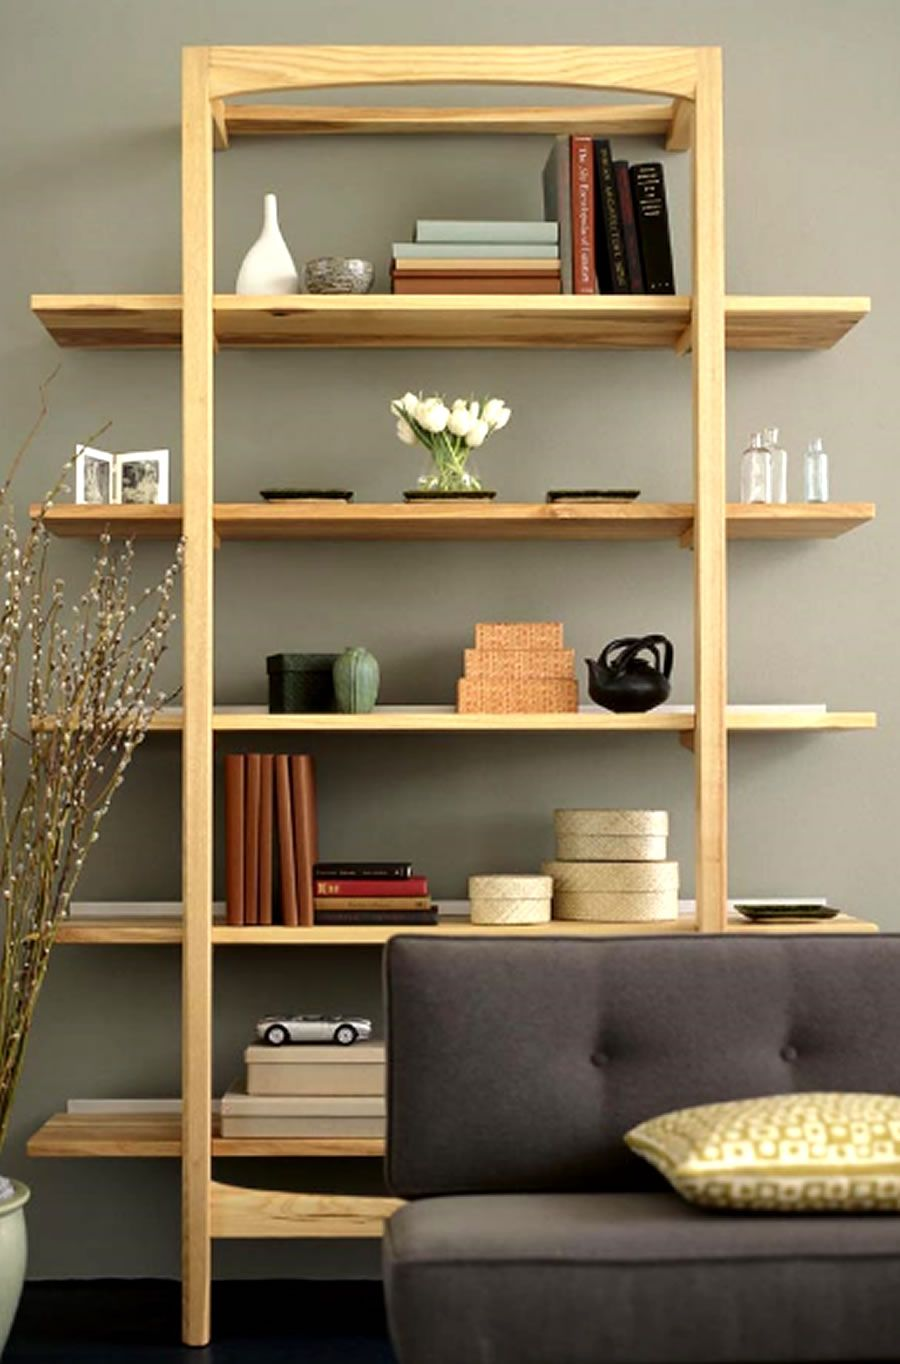 Office shelves modern luxury office shelves storage furniture design by city joinery - Furnitur design ...